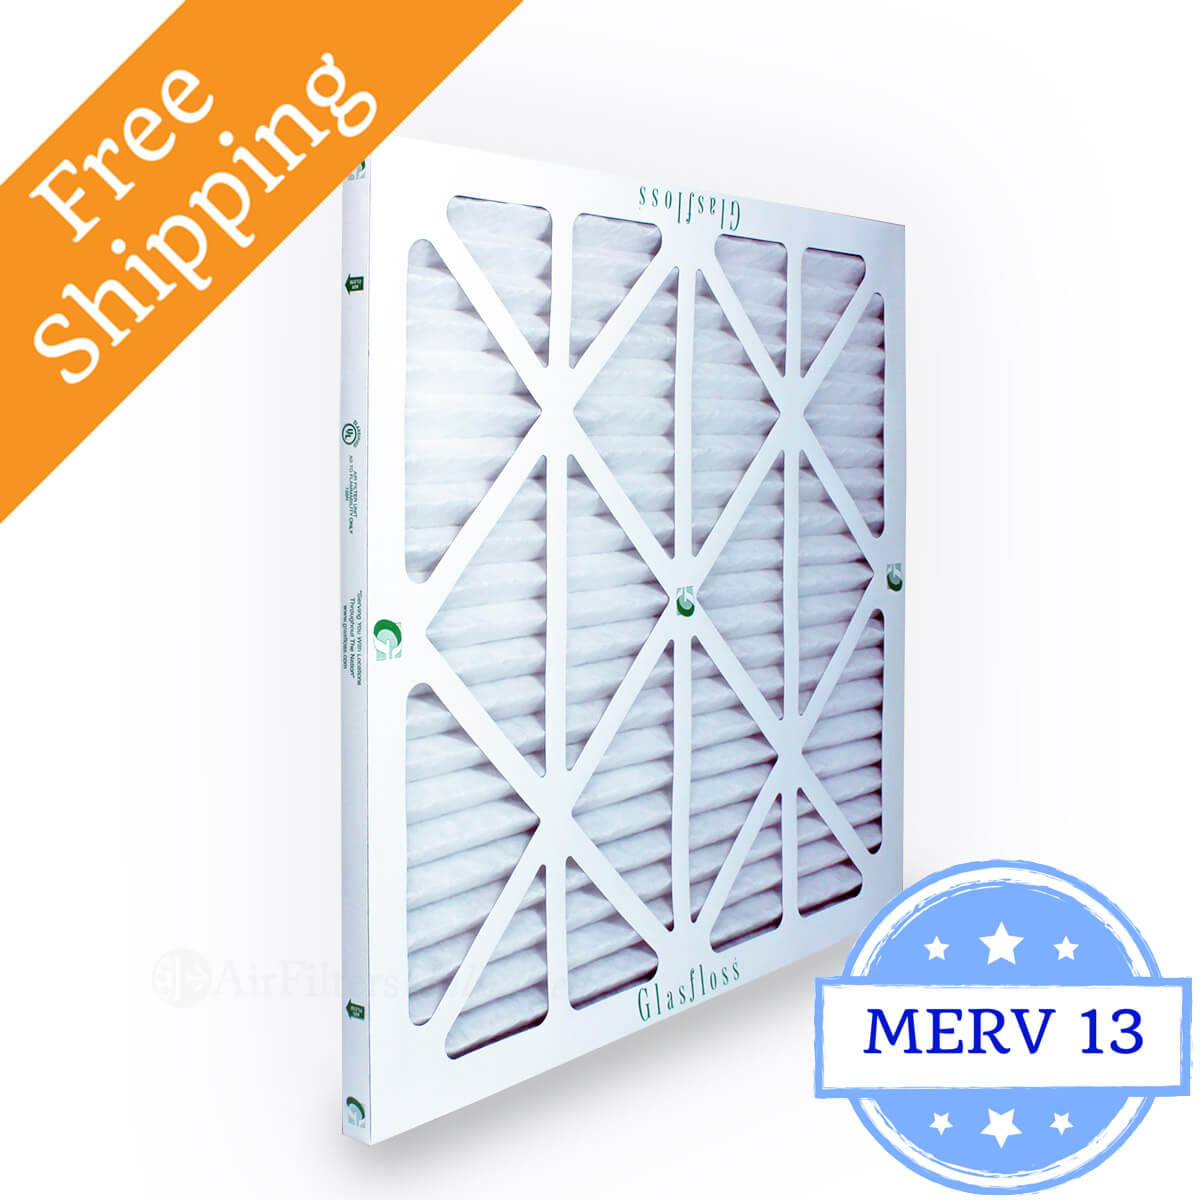 Glasfloss 25x25x1 Air Filter MR-13 Series